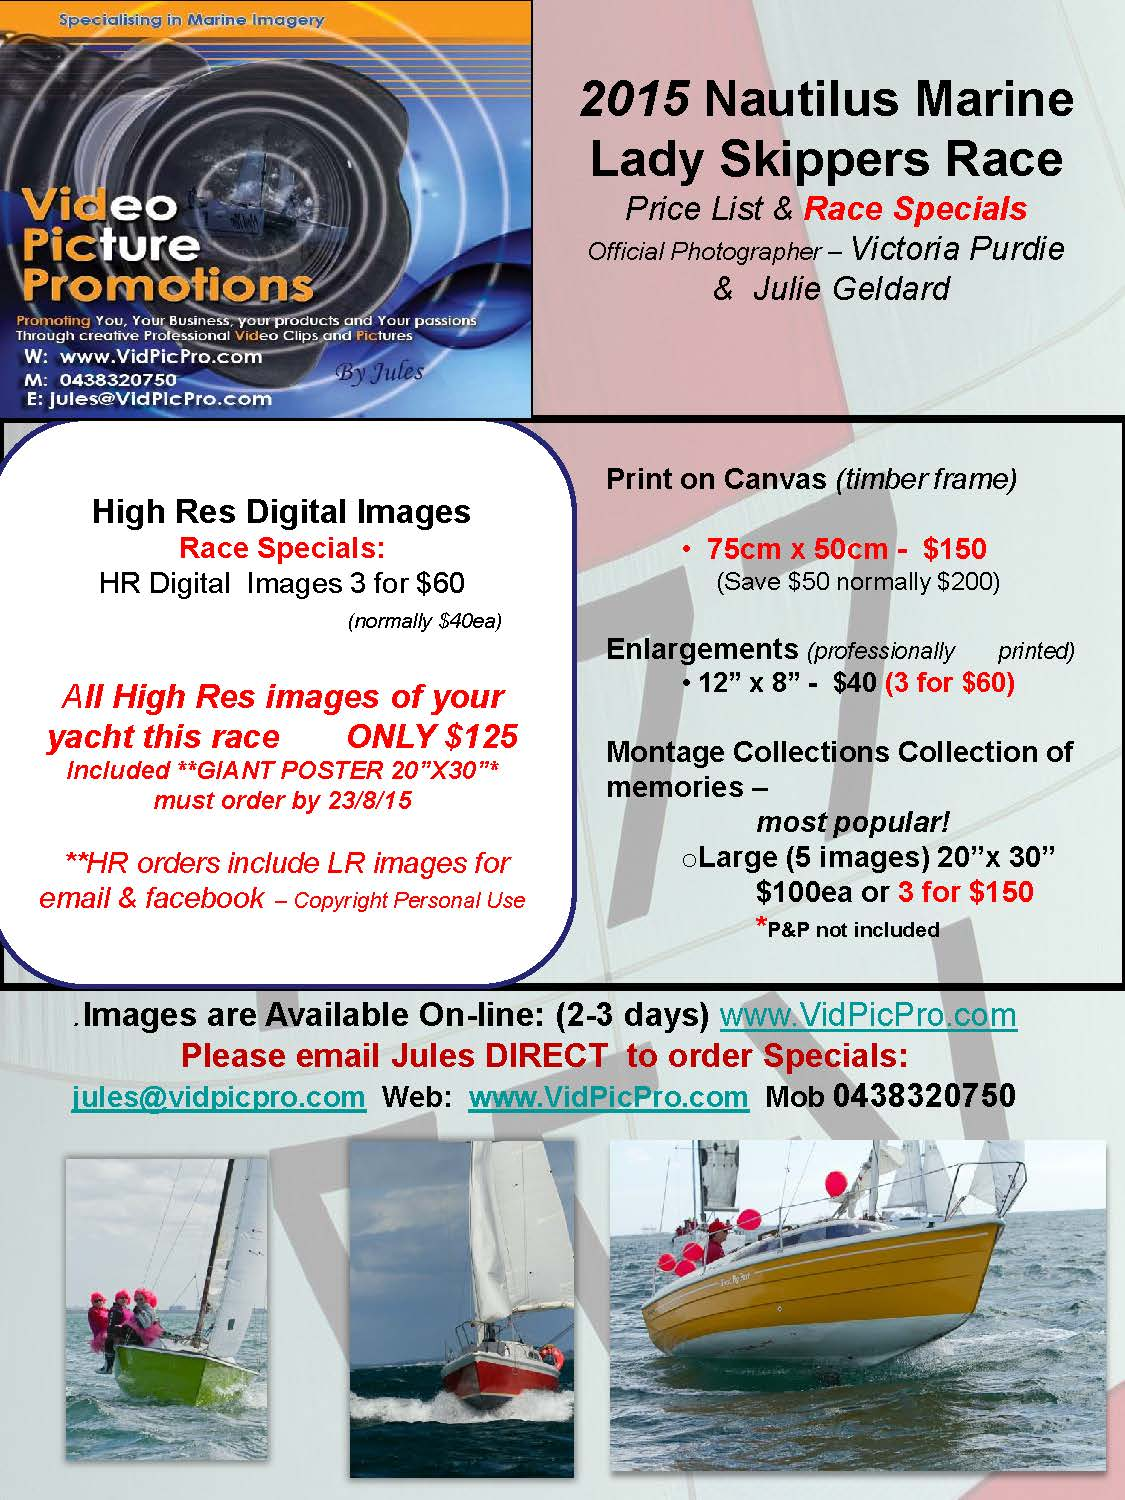 Nautilus Marine Lady Skippers Race Specials 2015 Julie Geldard